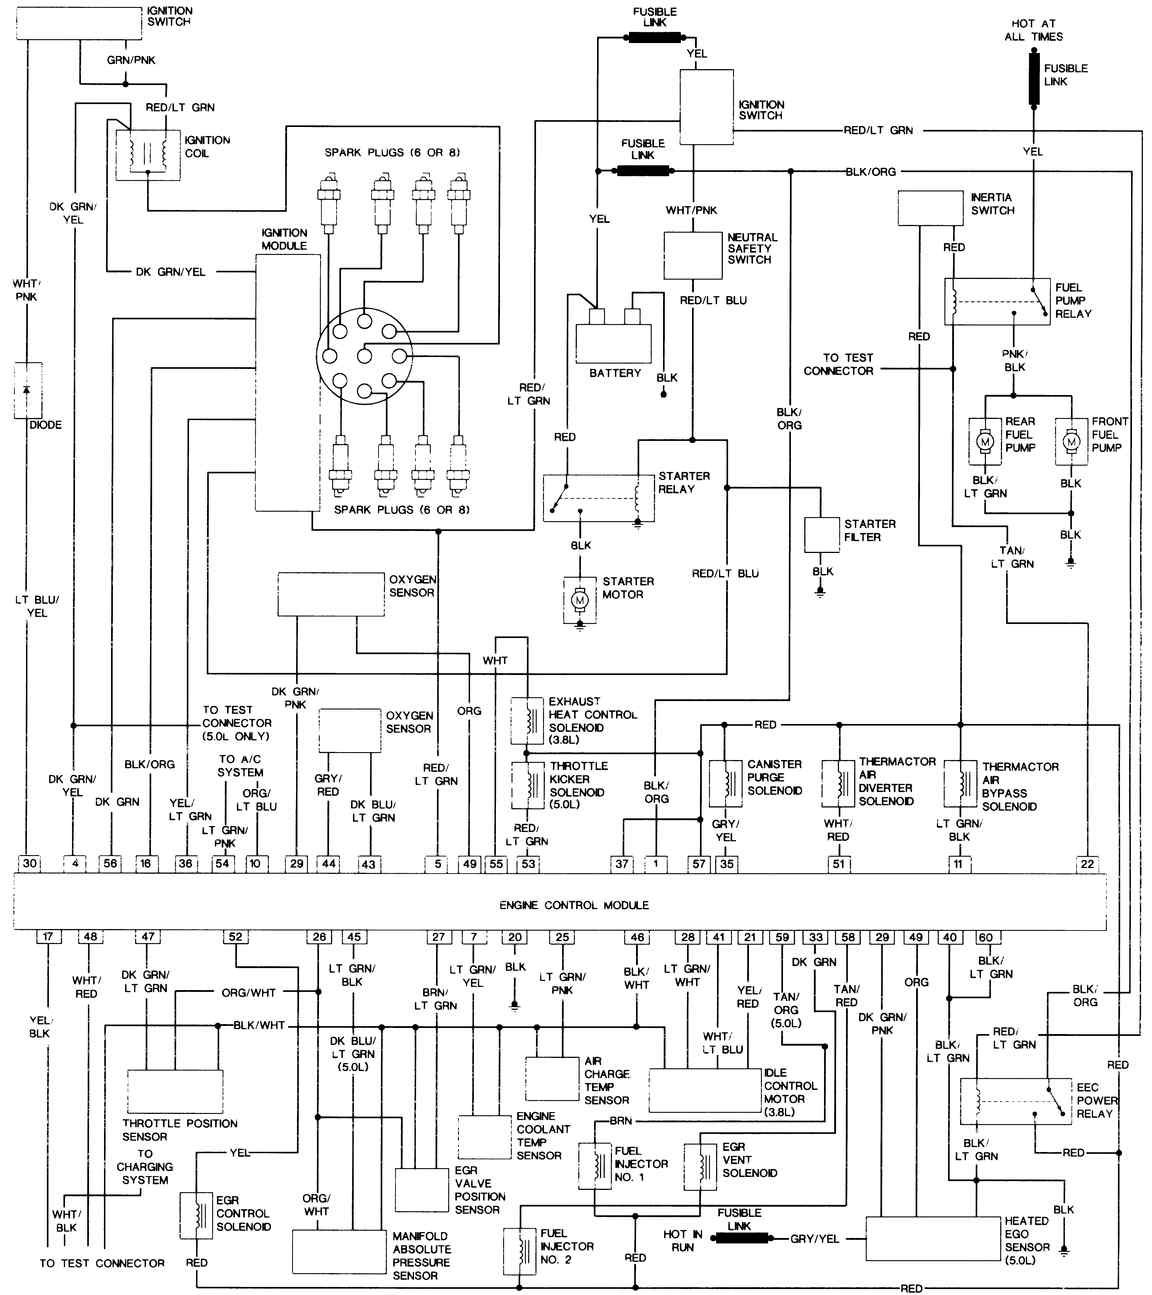 similiar 85 ford f 150 wiring diagram keywords ignition wiring diagram additionally 2007 ford f 150 fuse box diagram